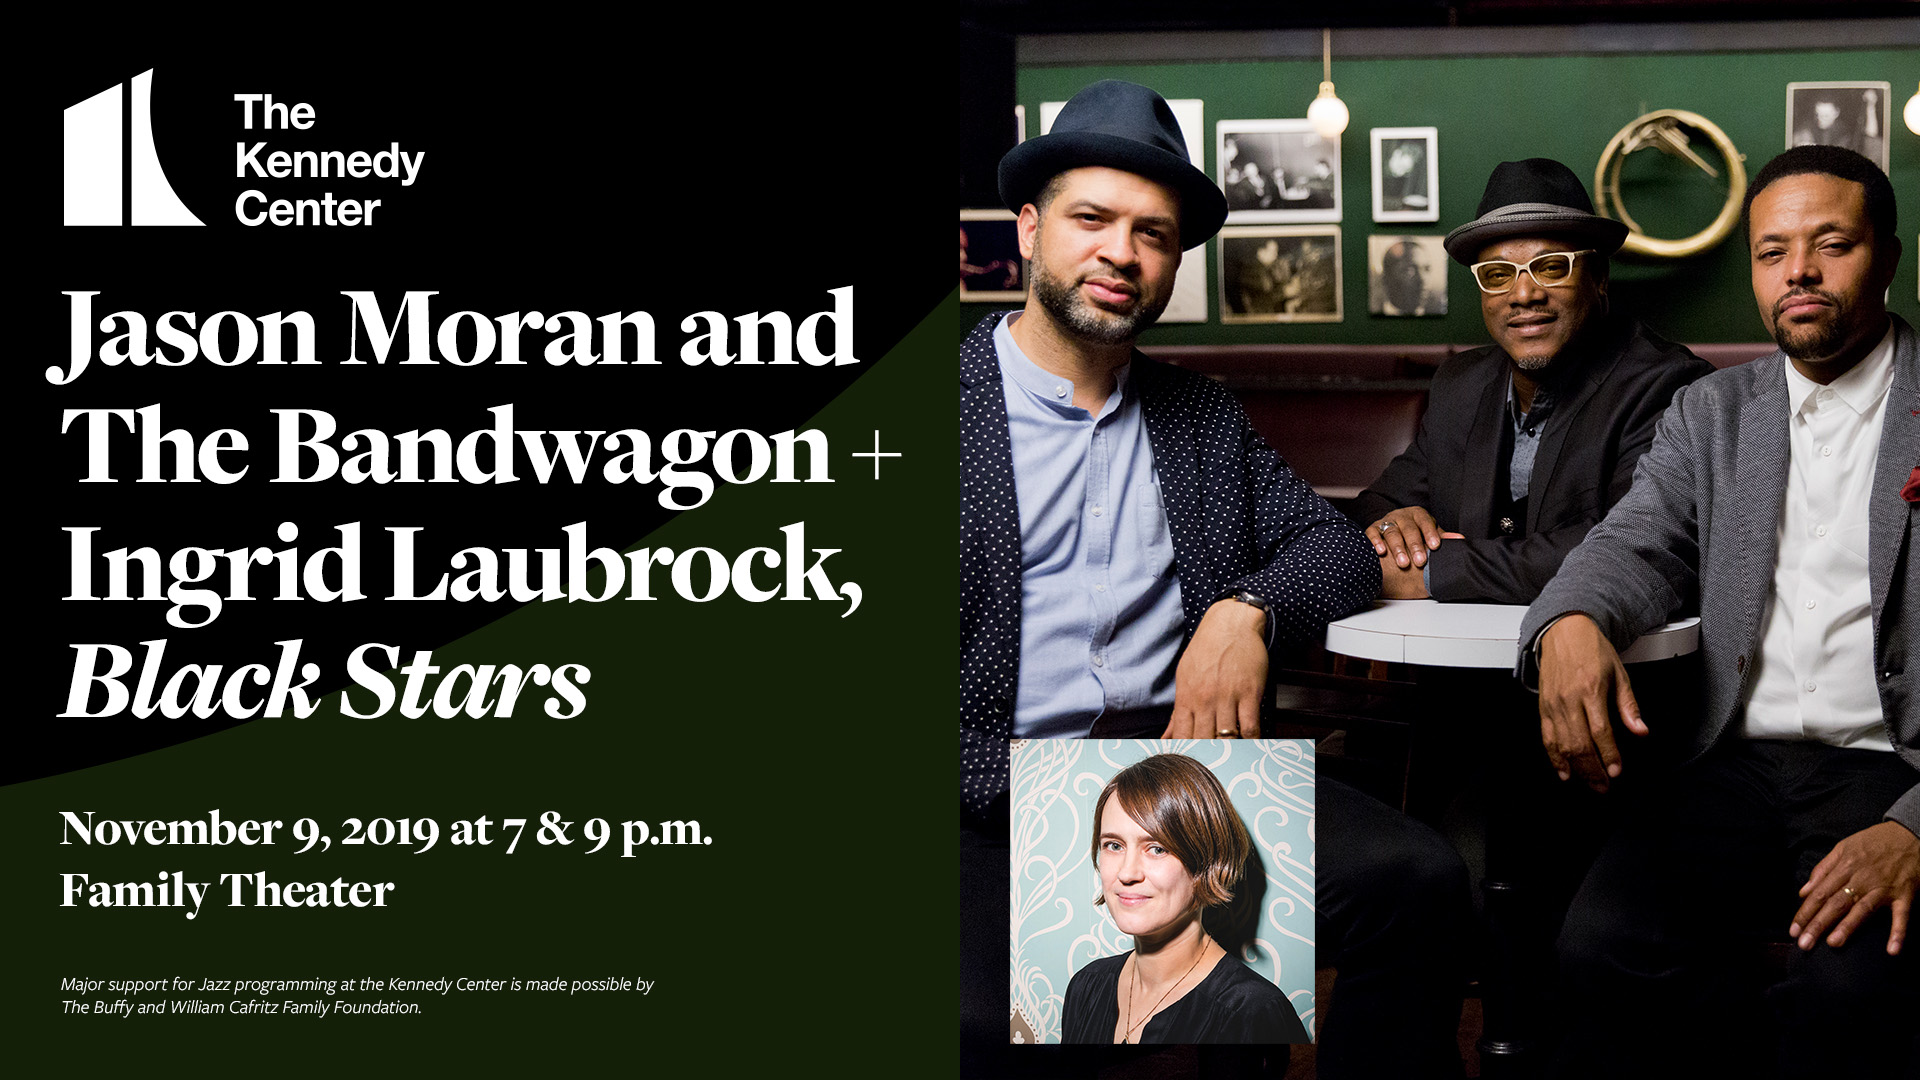 Jason Moran and The Bandwagon + Ingrid Laubrock | November 9, 2019